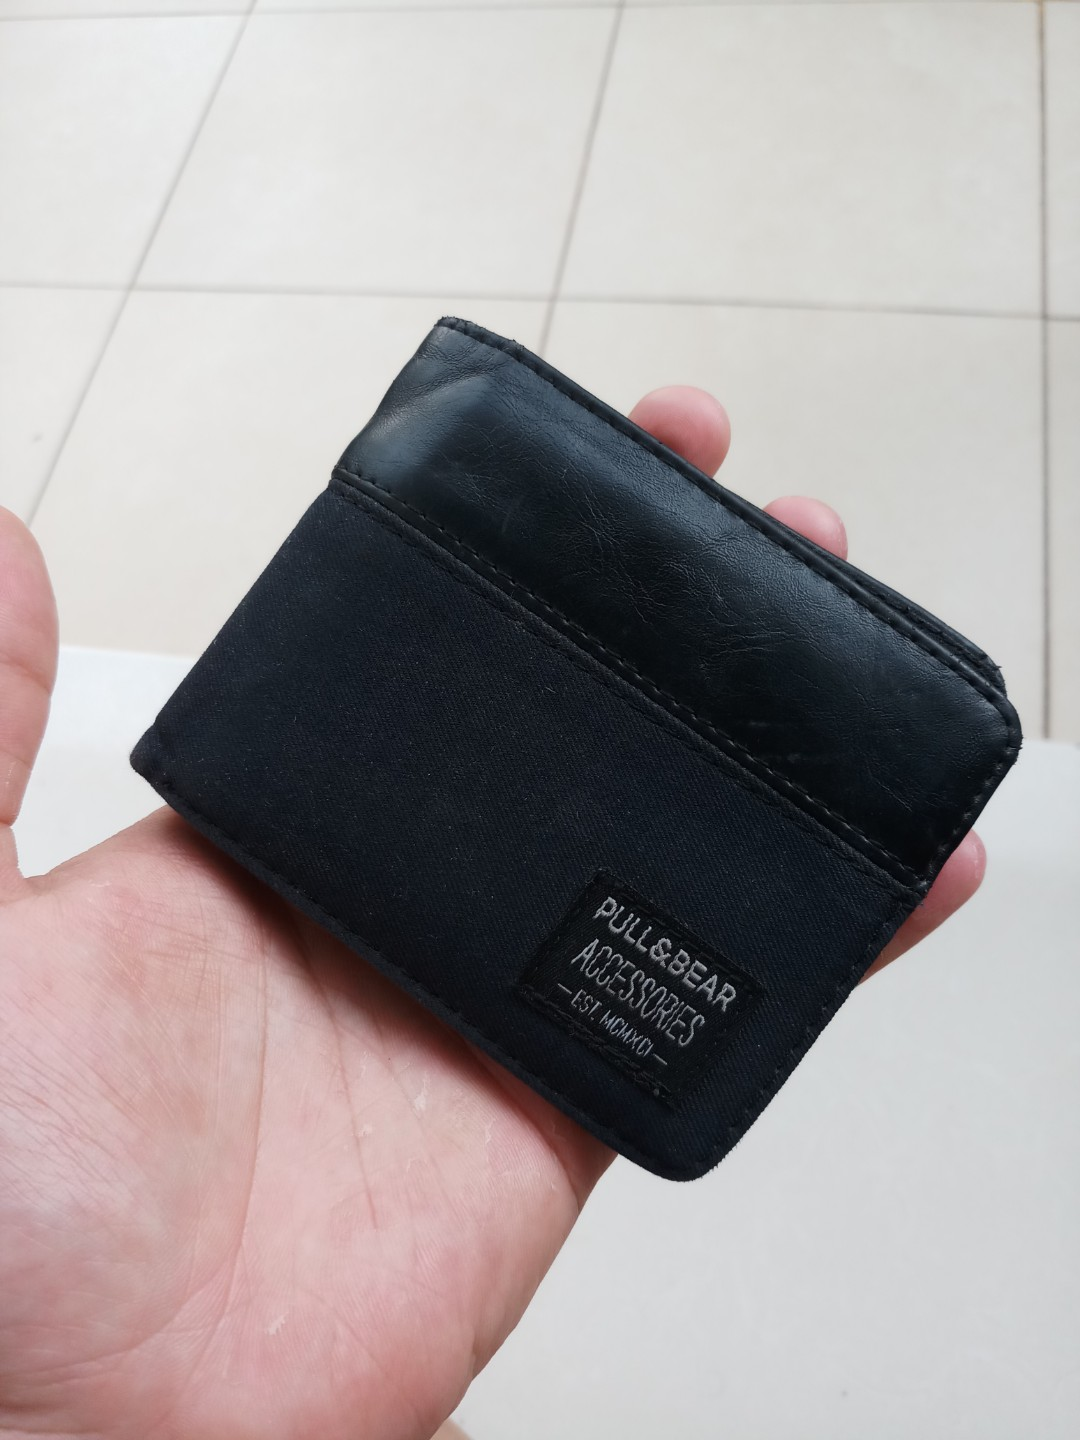 Clutch pierre cardin original buy one get one(dompet kecil)